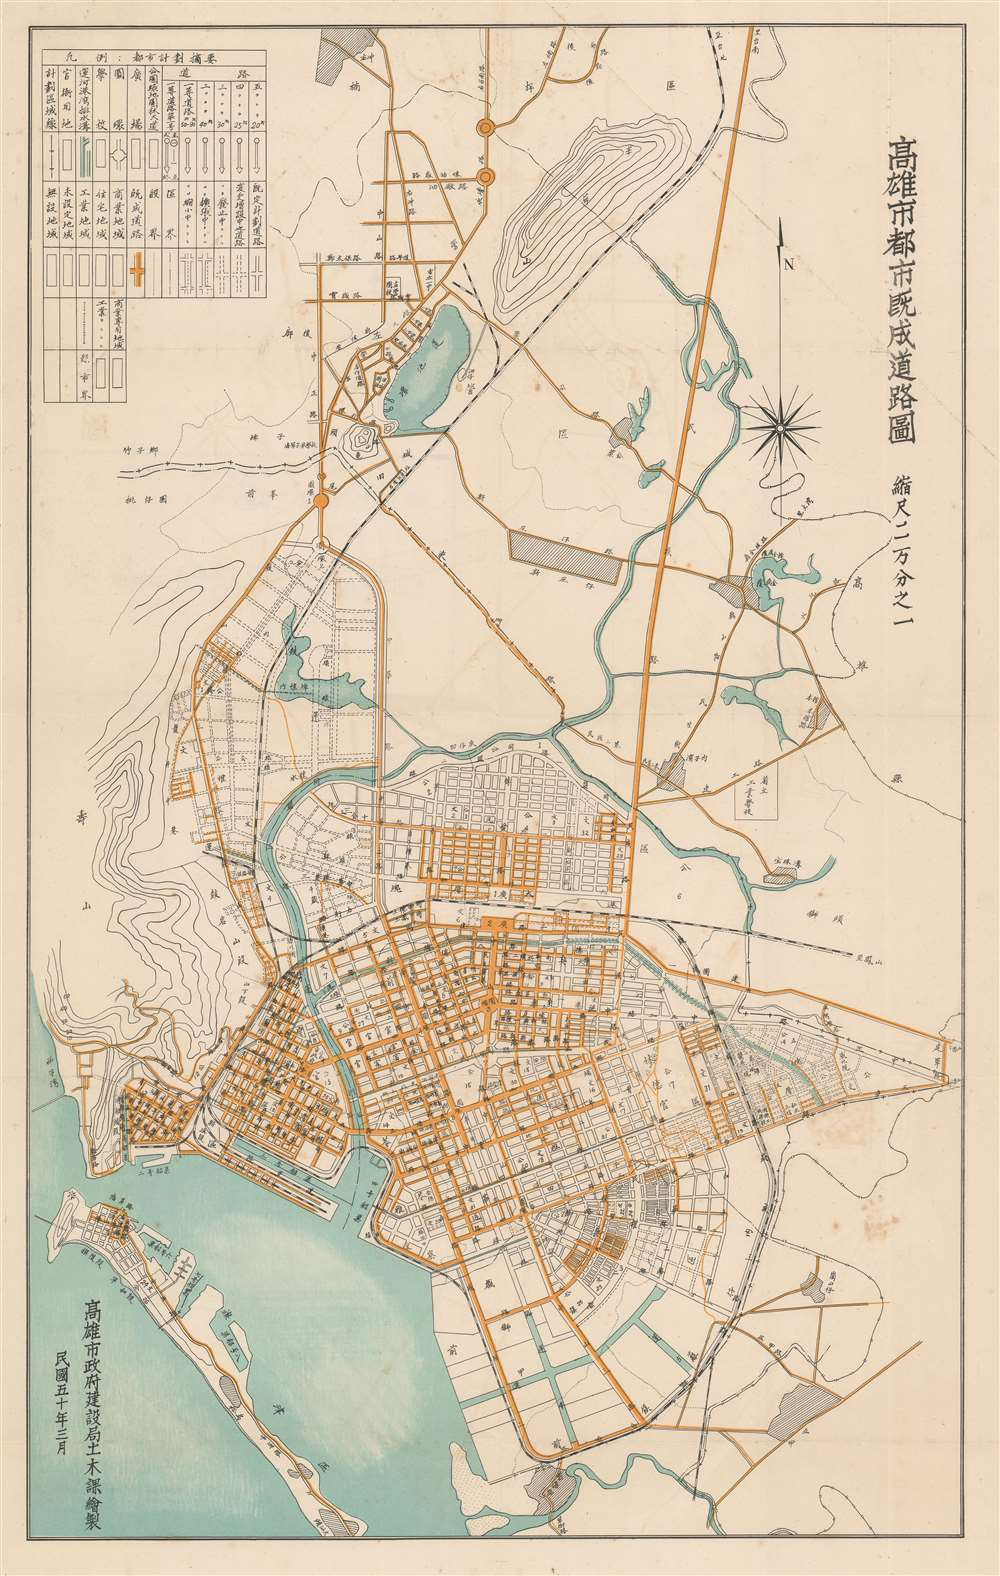 Map of Existing Roads in Kaohsiung City. / Kaohsiung City Planning Map. / Geographical Map of Kaohsiung City Zones.  /  高雄市都市既成道路圖 / 高雄市都市計畫圖 / 高雄市都市計書地域圖 - Alternate View 1